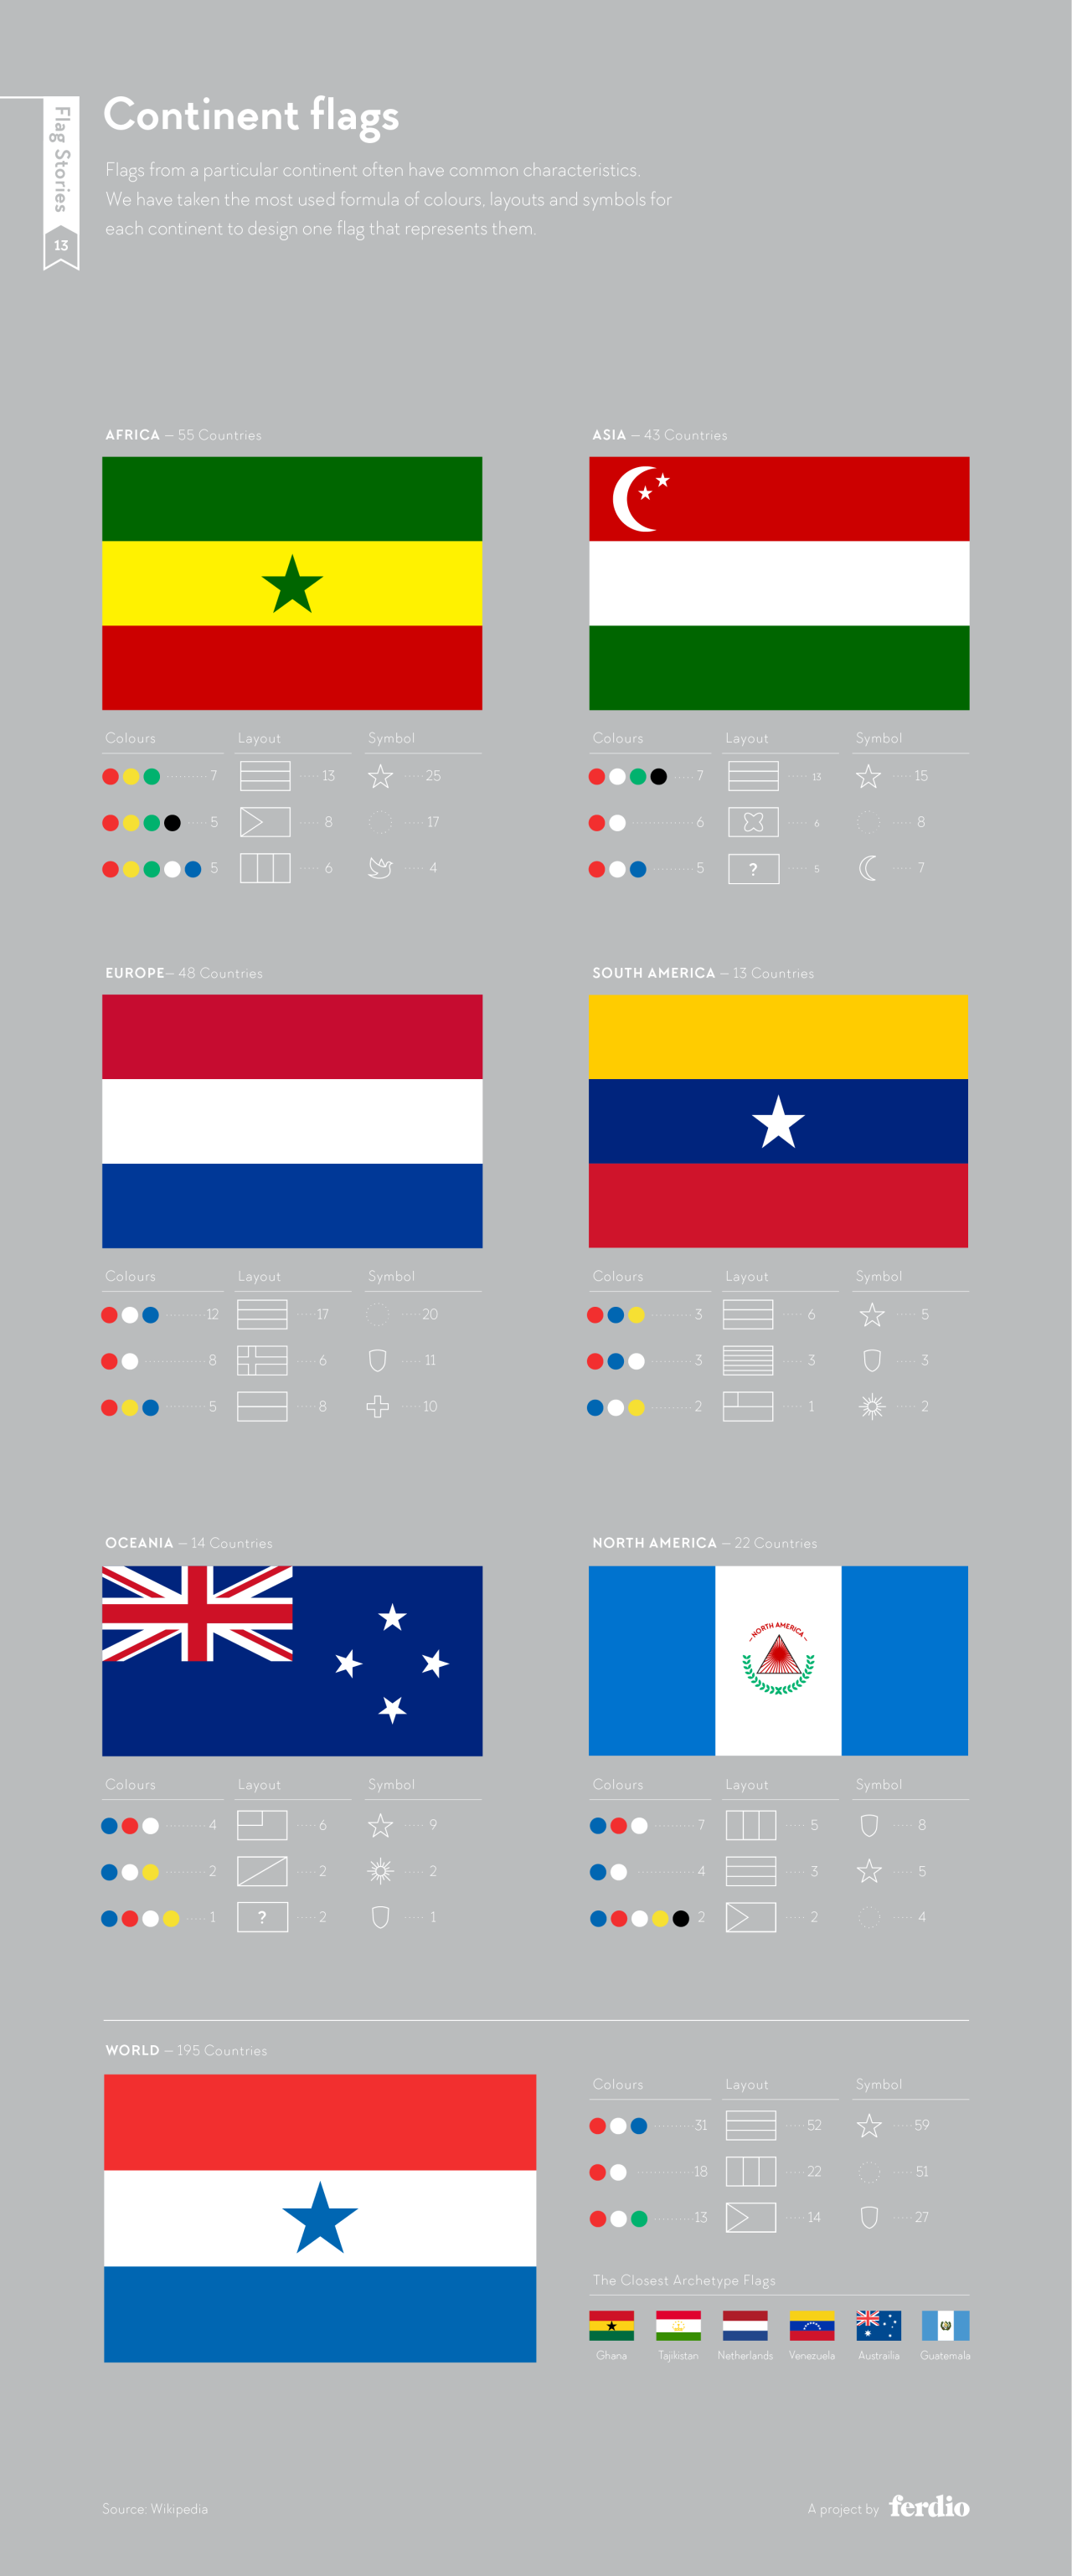 flag-stories-colors-symbols-data-infographics-3